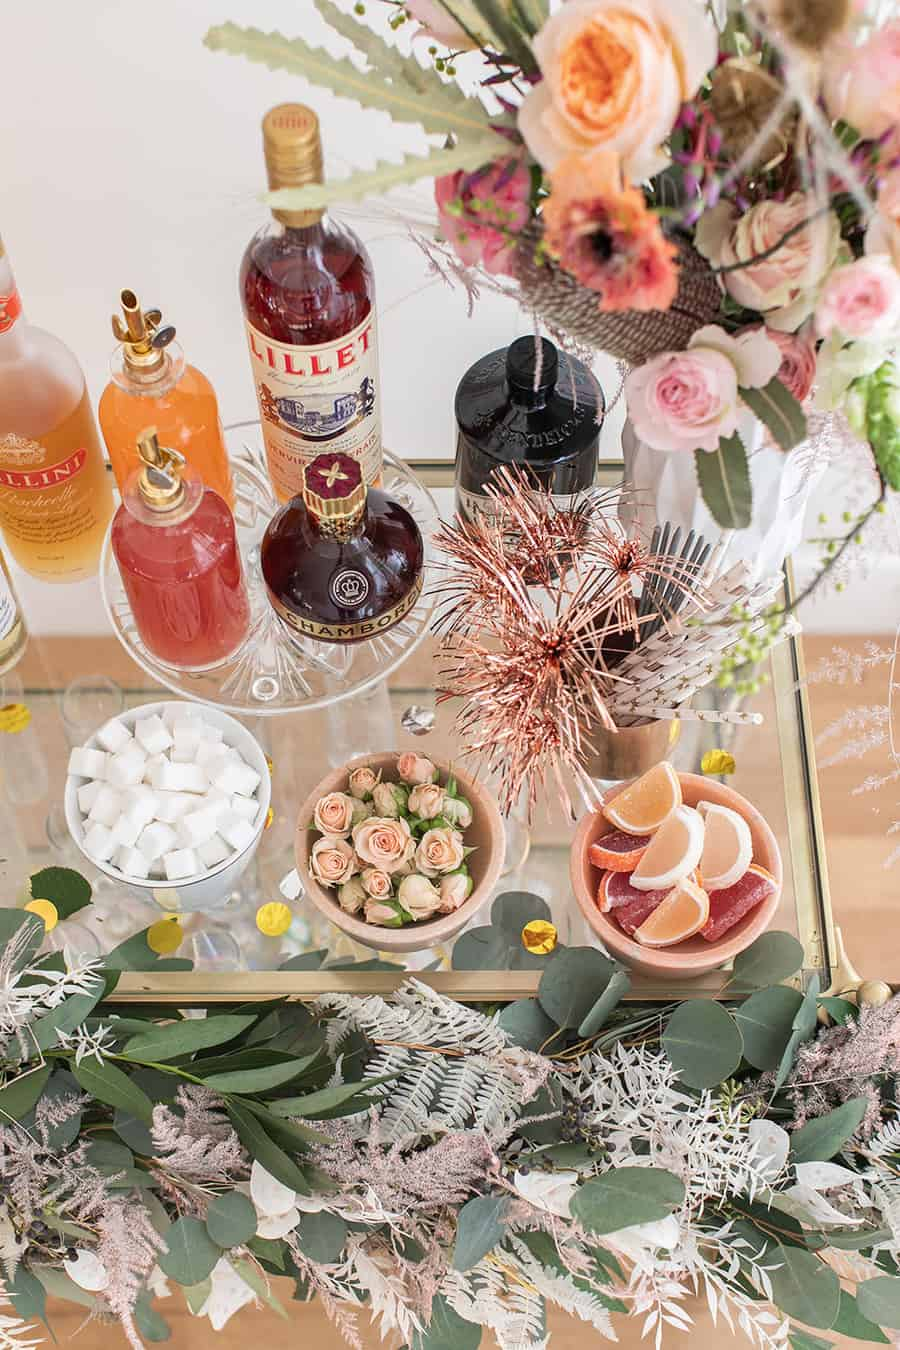 Bar with gin, toppings, sparklers and flowers for a New Year's Eve Champagne Bar